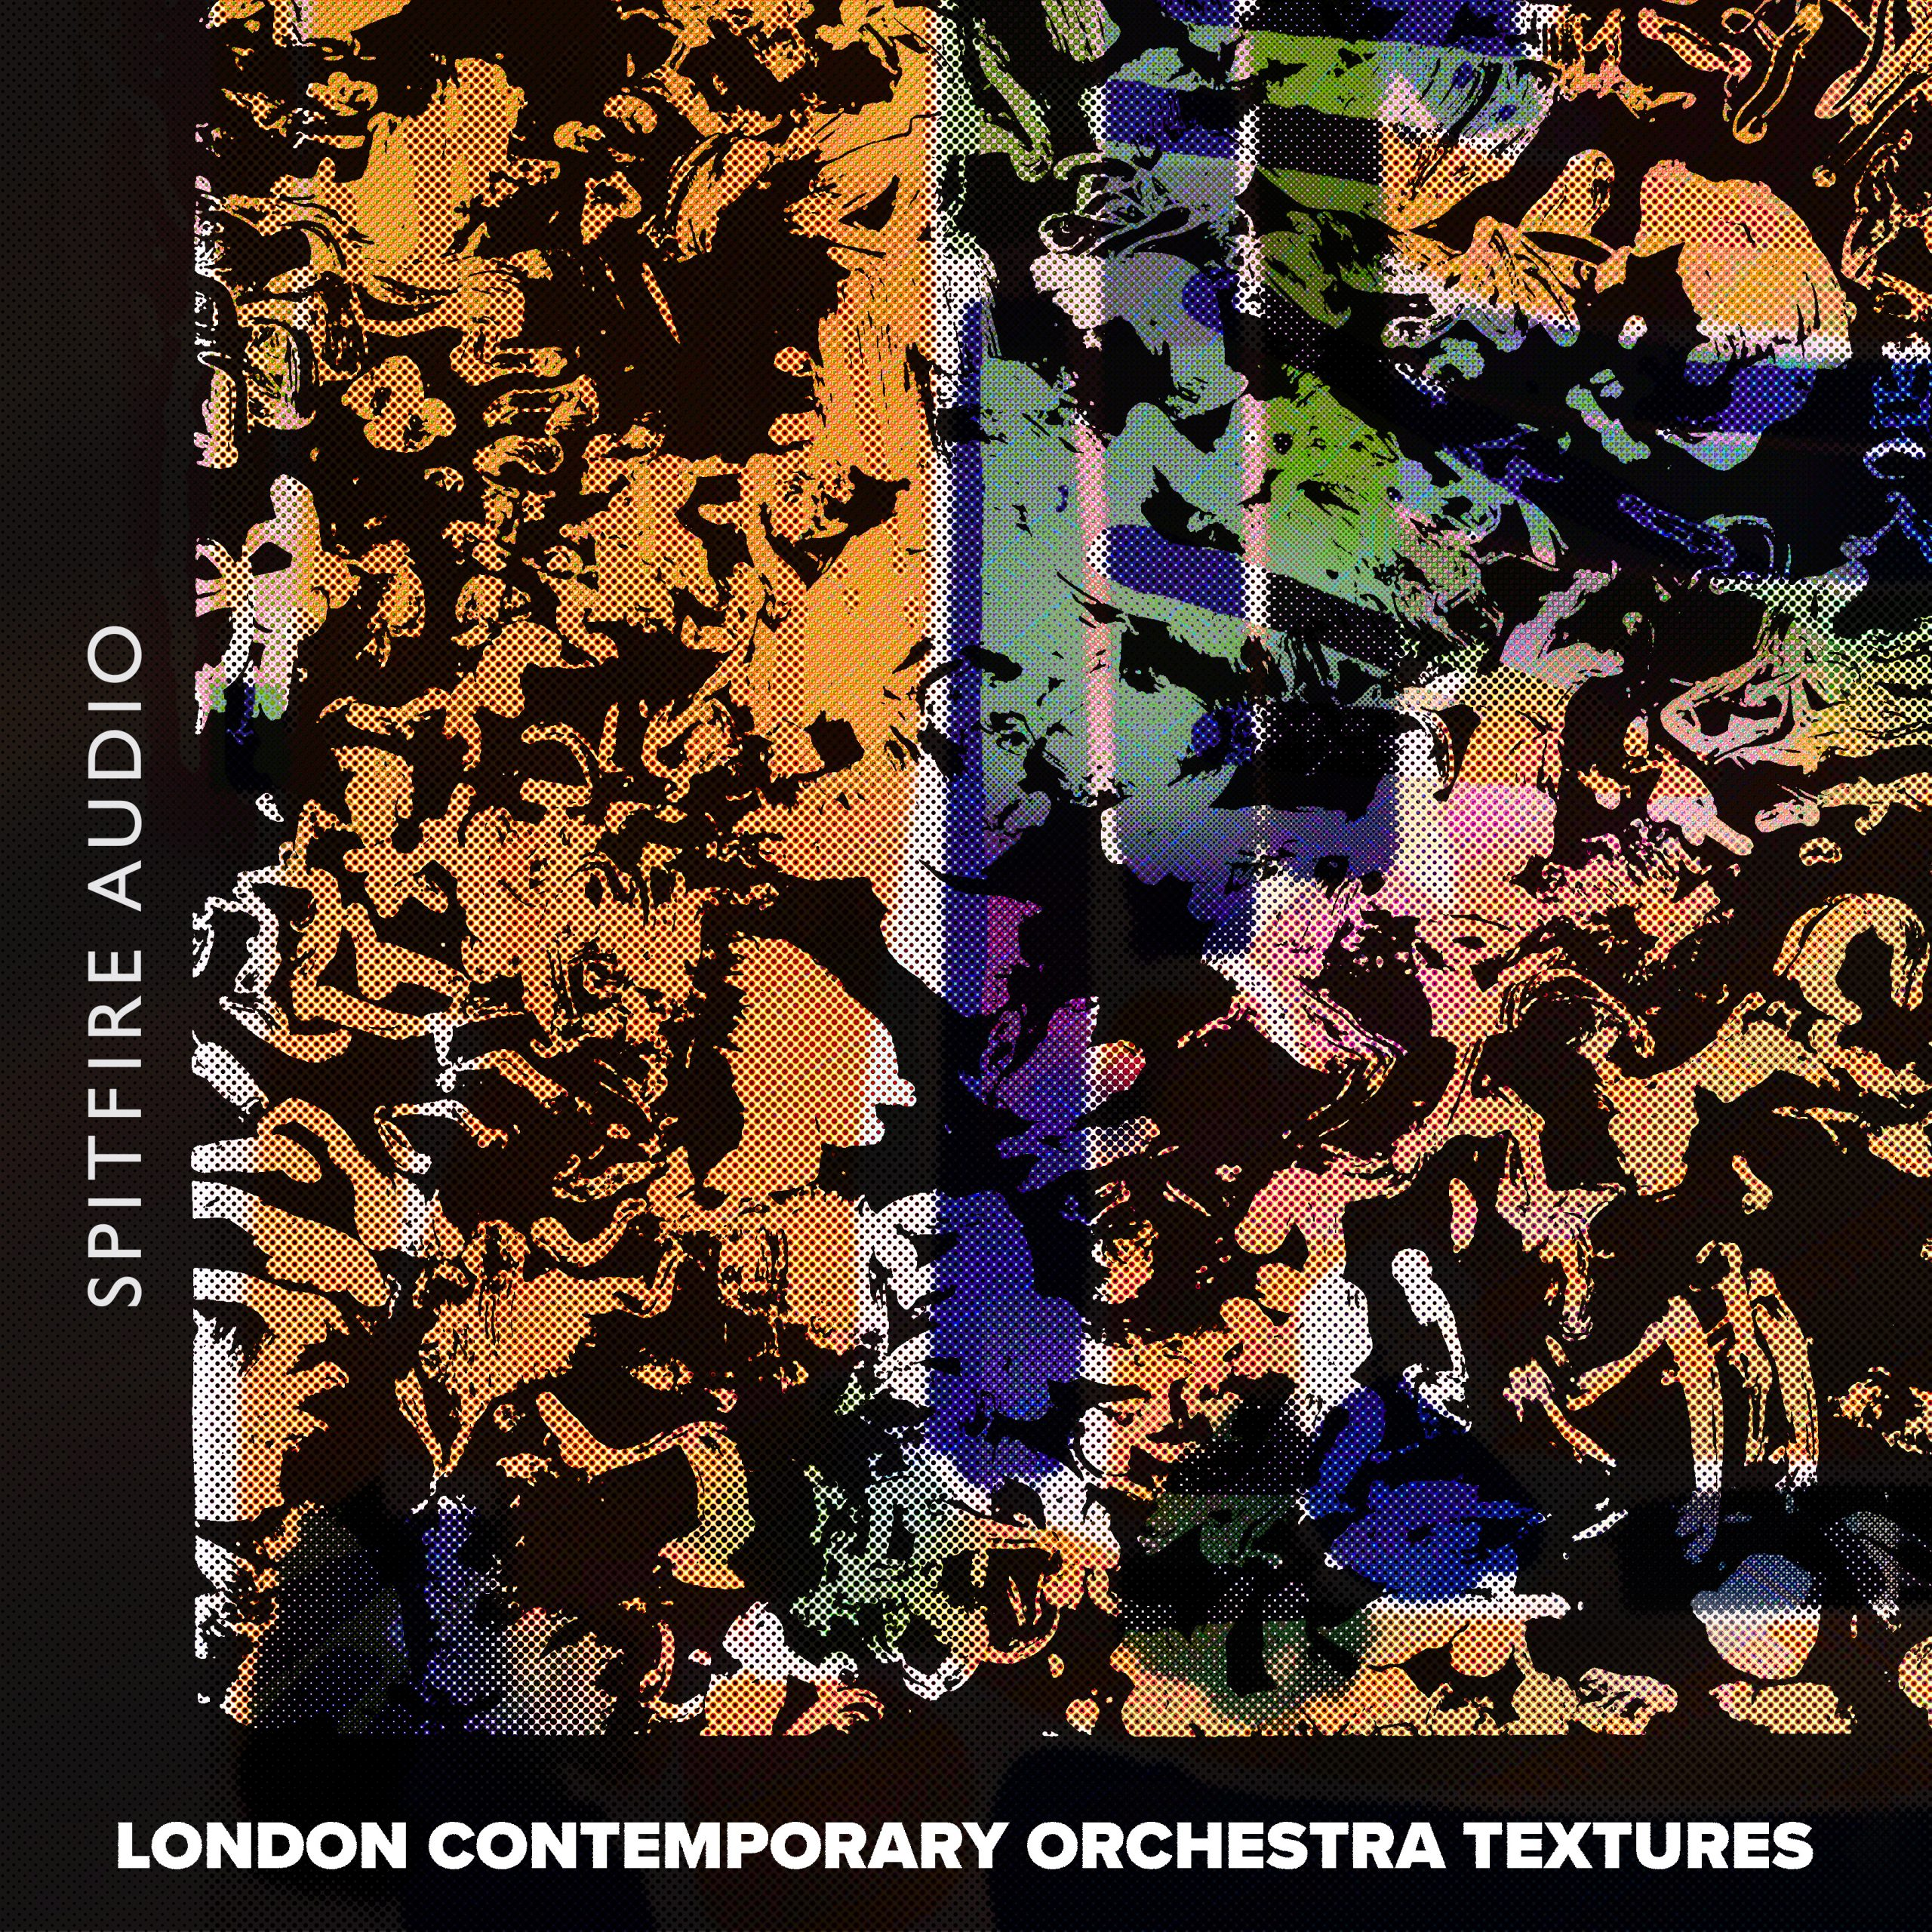 Review of London Contemporary Orchestra Textures – a virtual instrument for Kontakt (full version or player) by Spitfire Audio